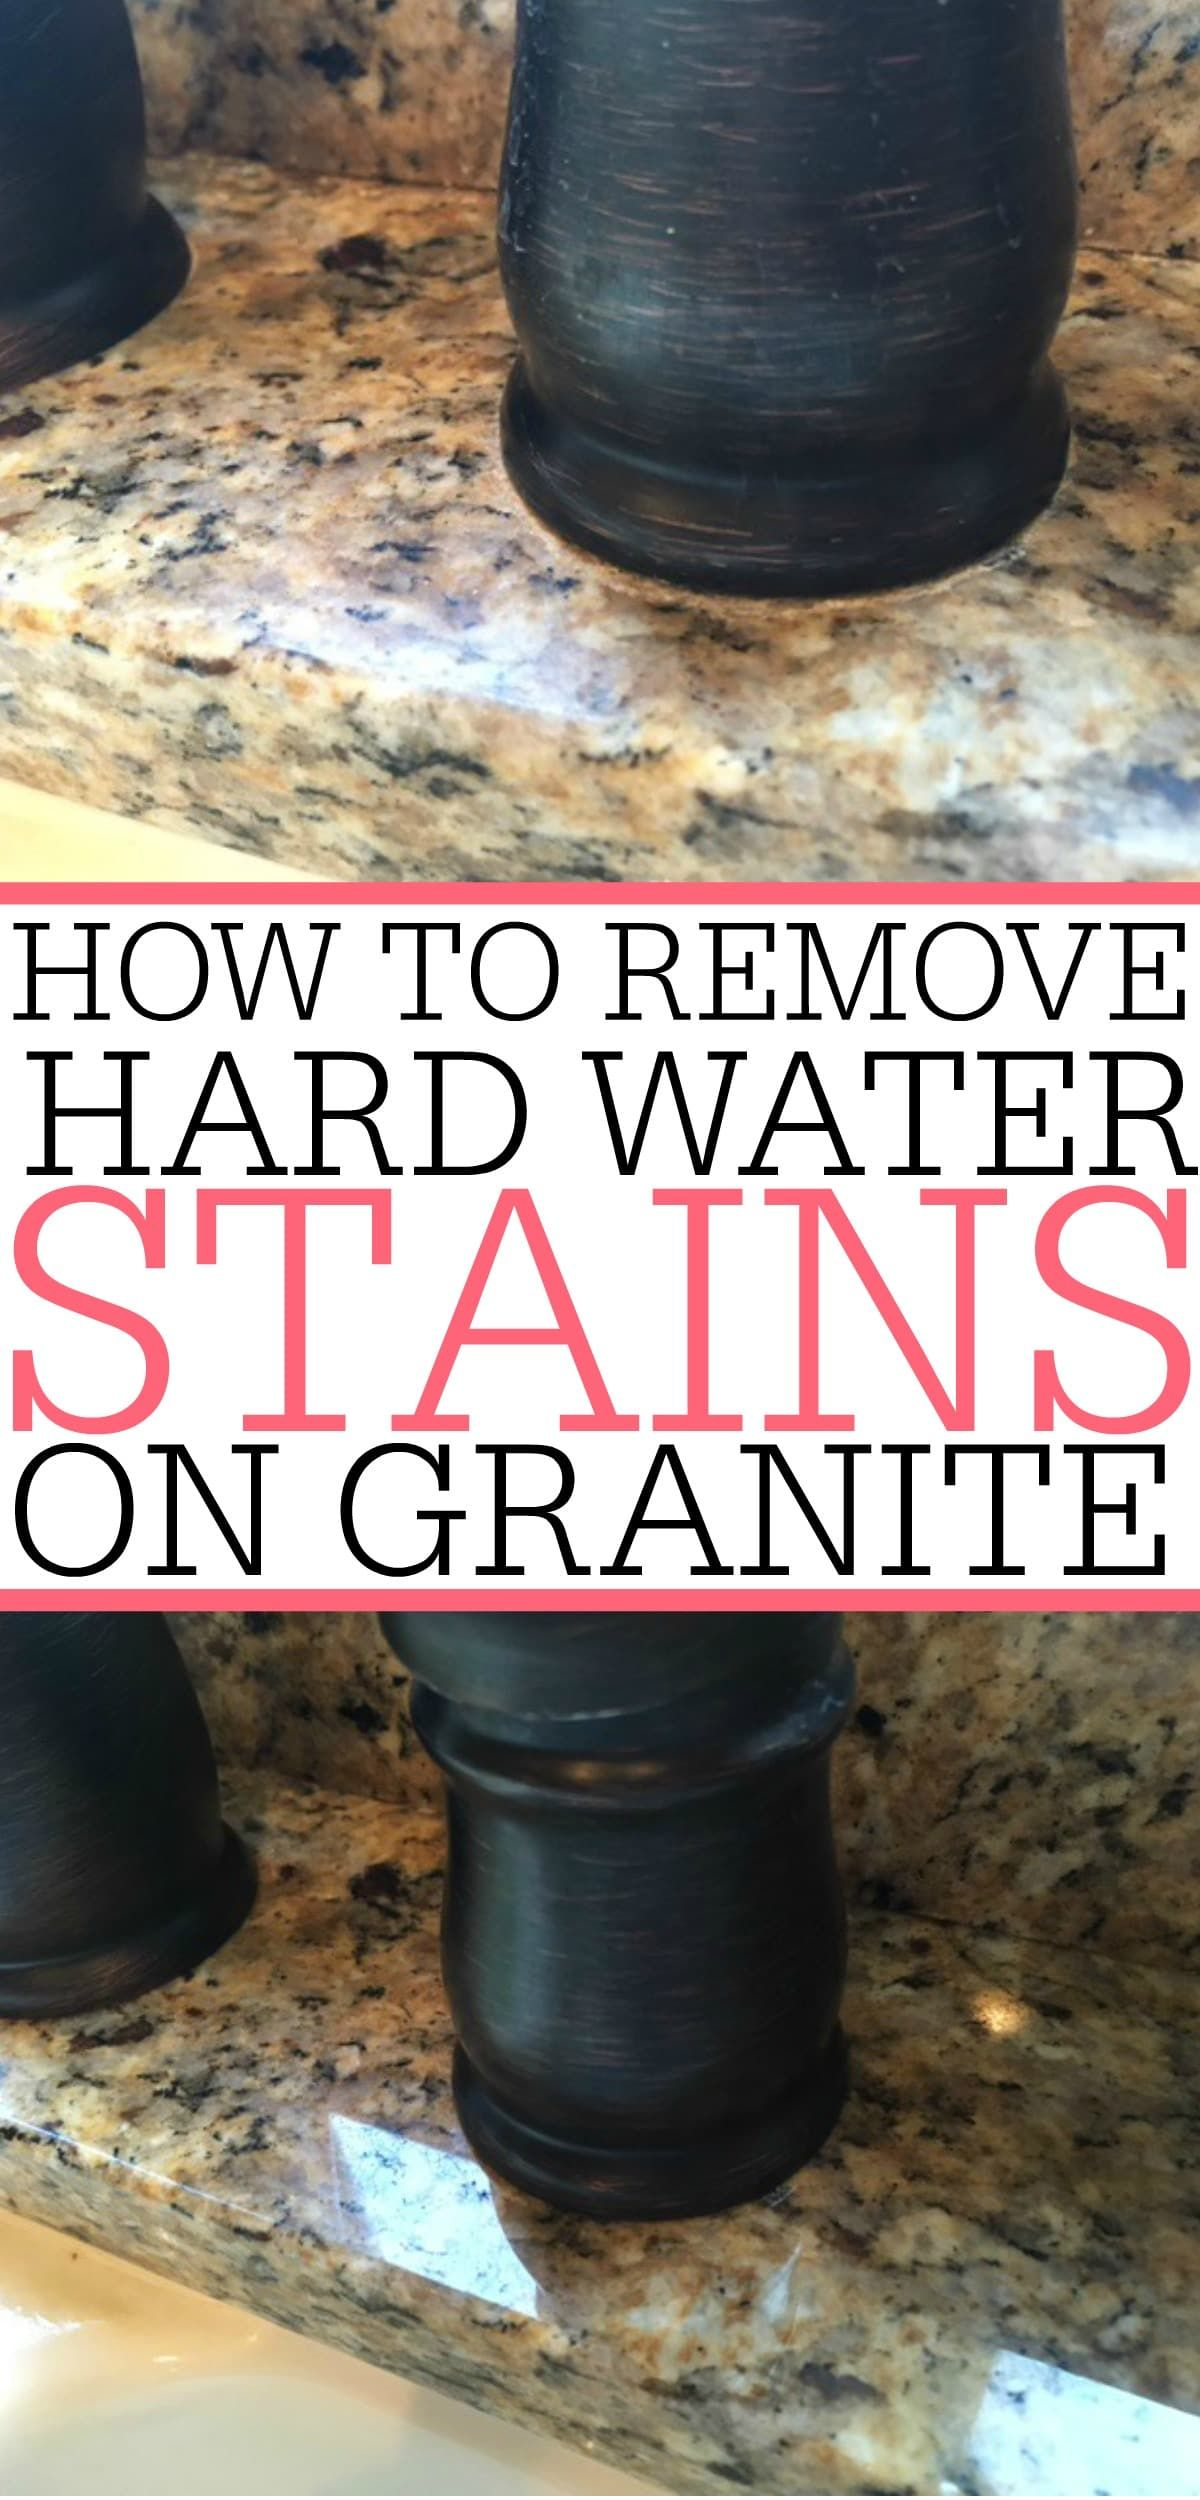 How To Get Rid Of A Water Stain On Granite Hard Water Stain